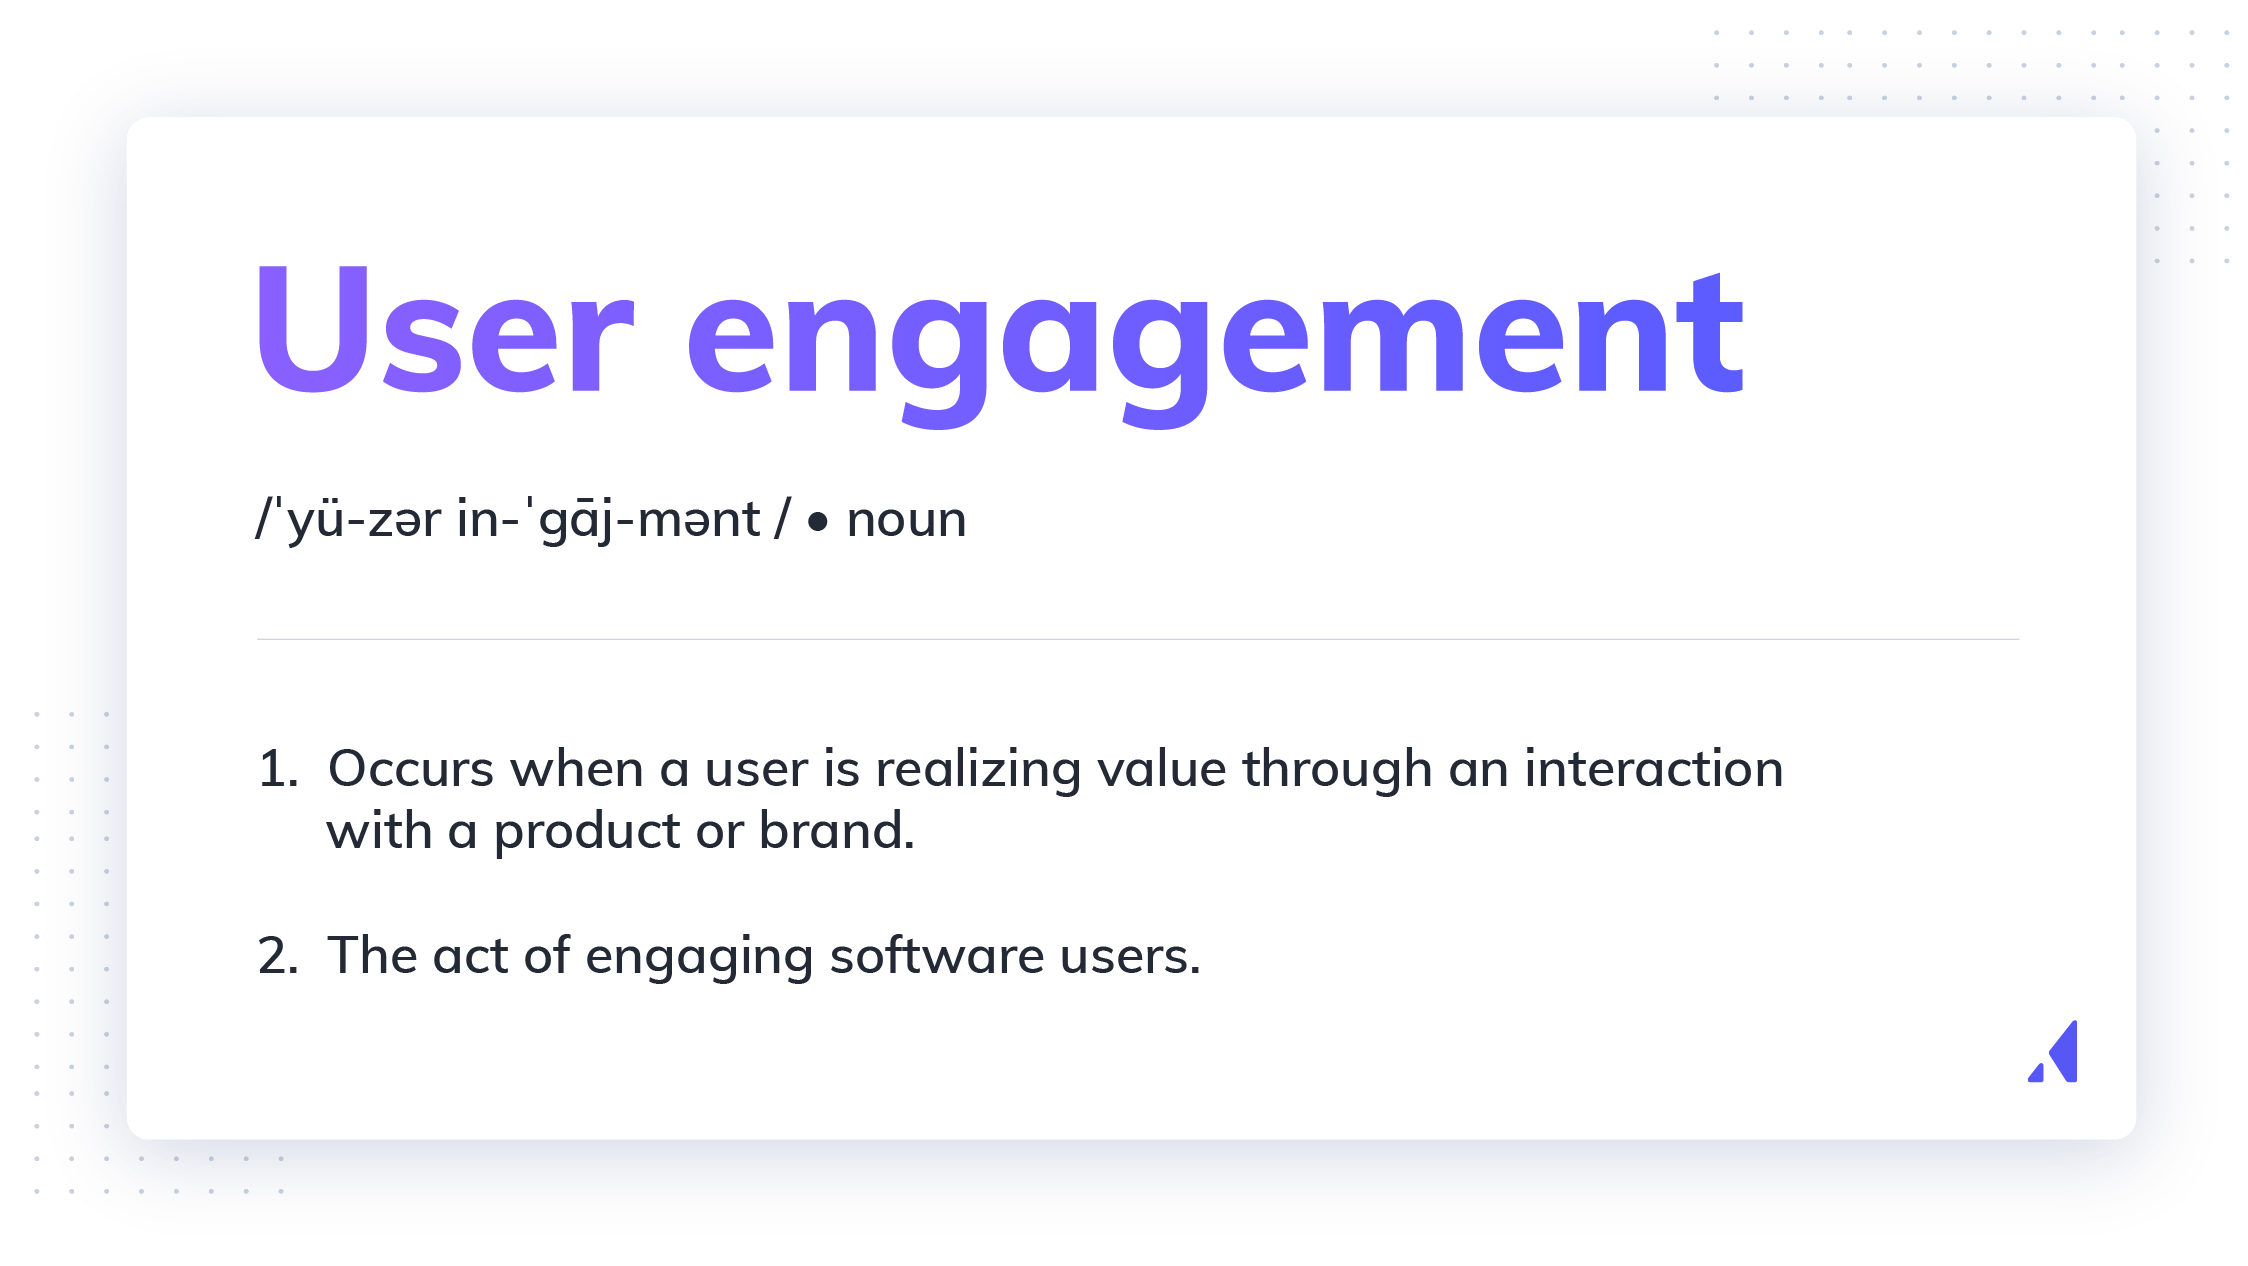 User engagement definition. User engagement is when a user is realizing value through an interaction with a software product or brand.